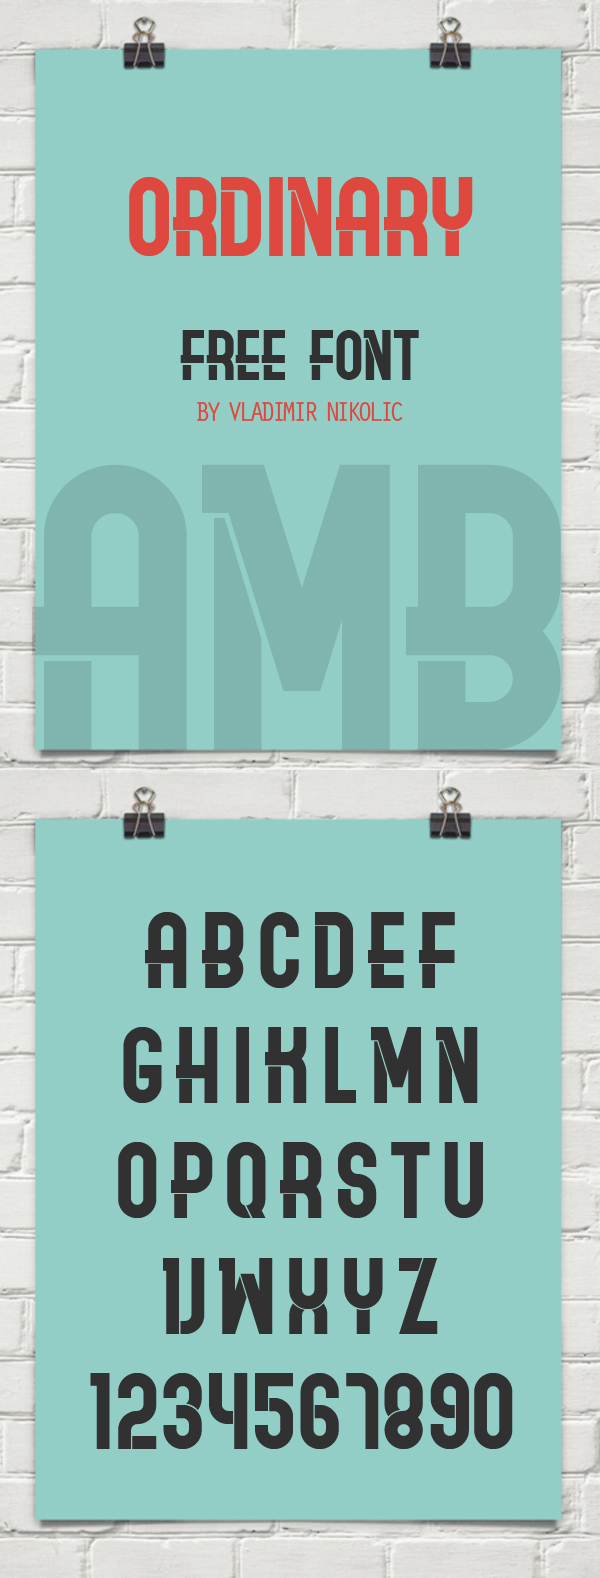 100 Greatest Free Fonts For 2019 - 105